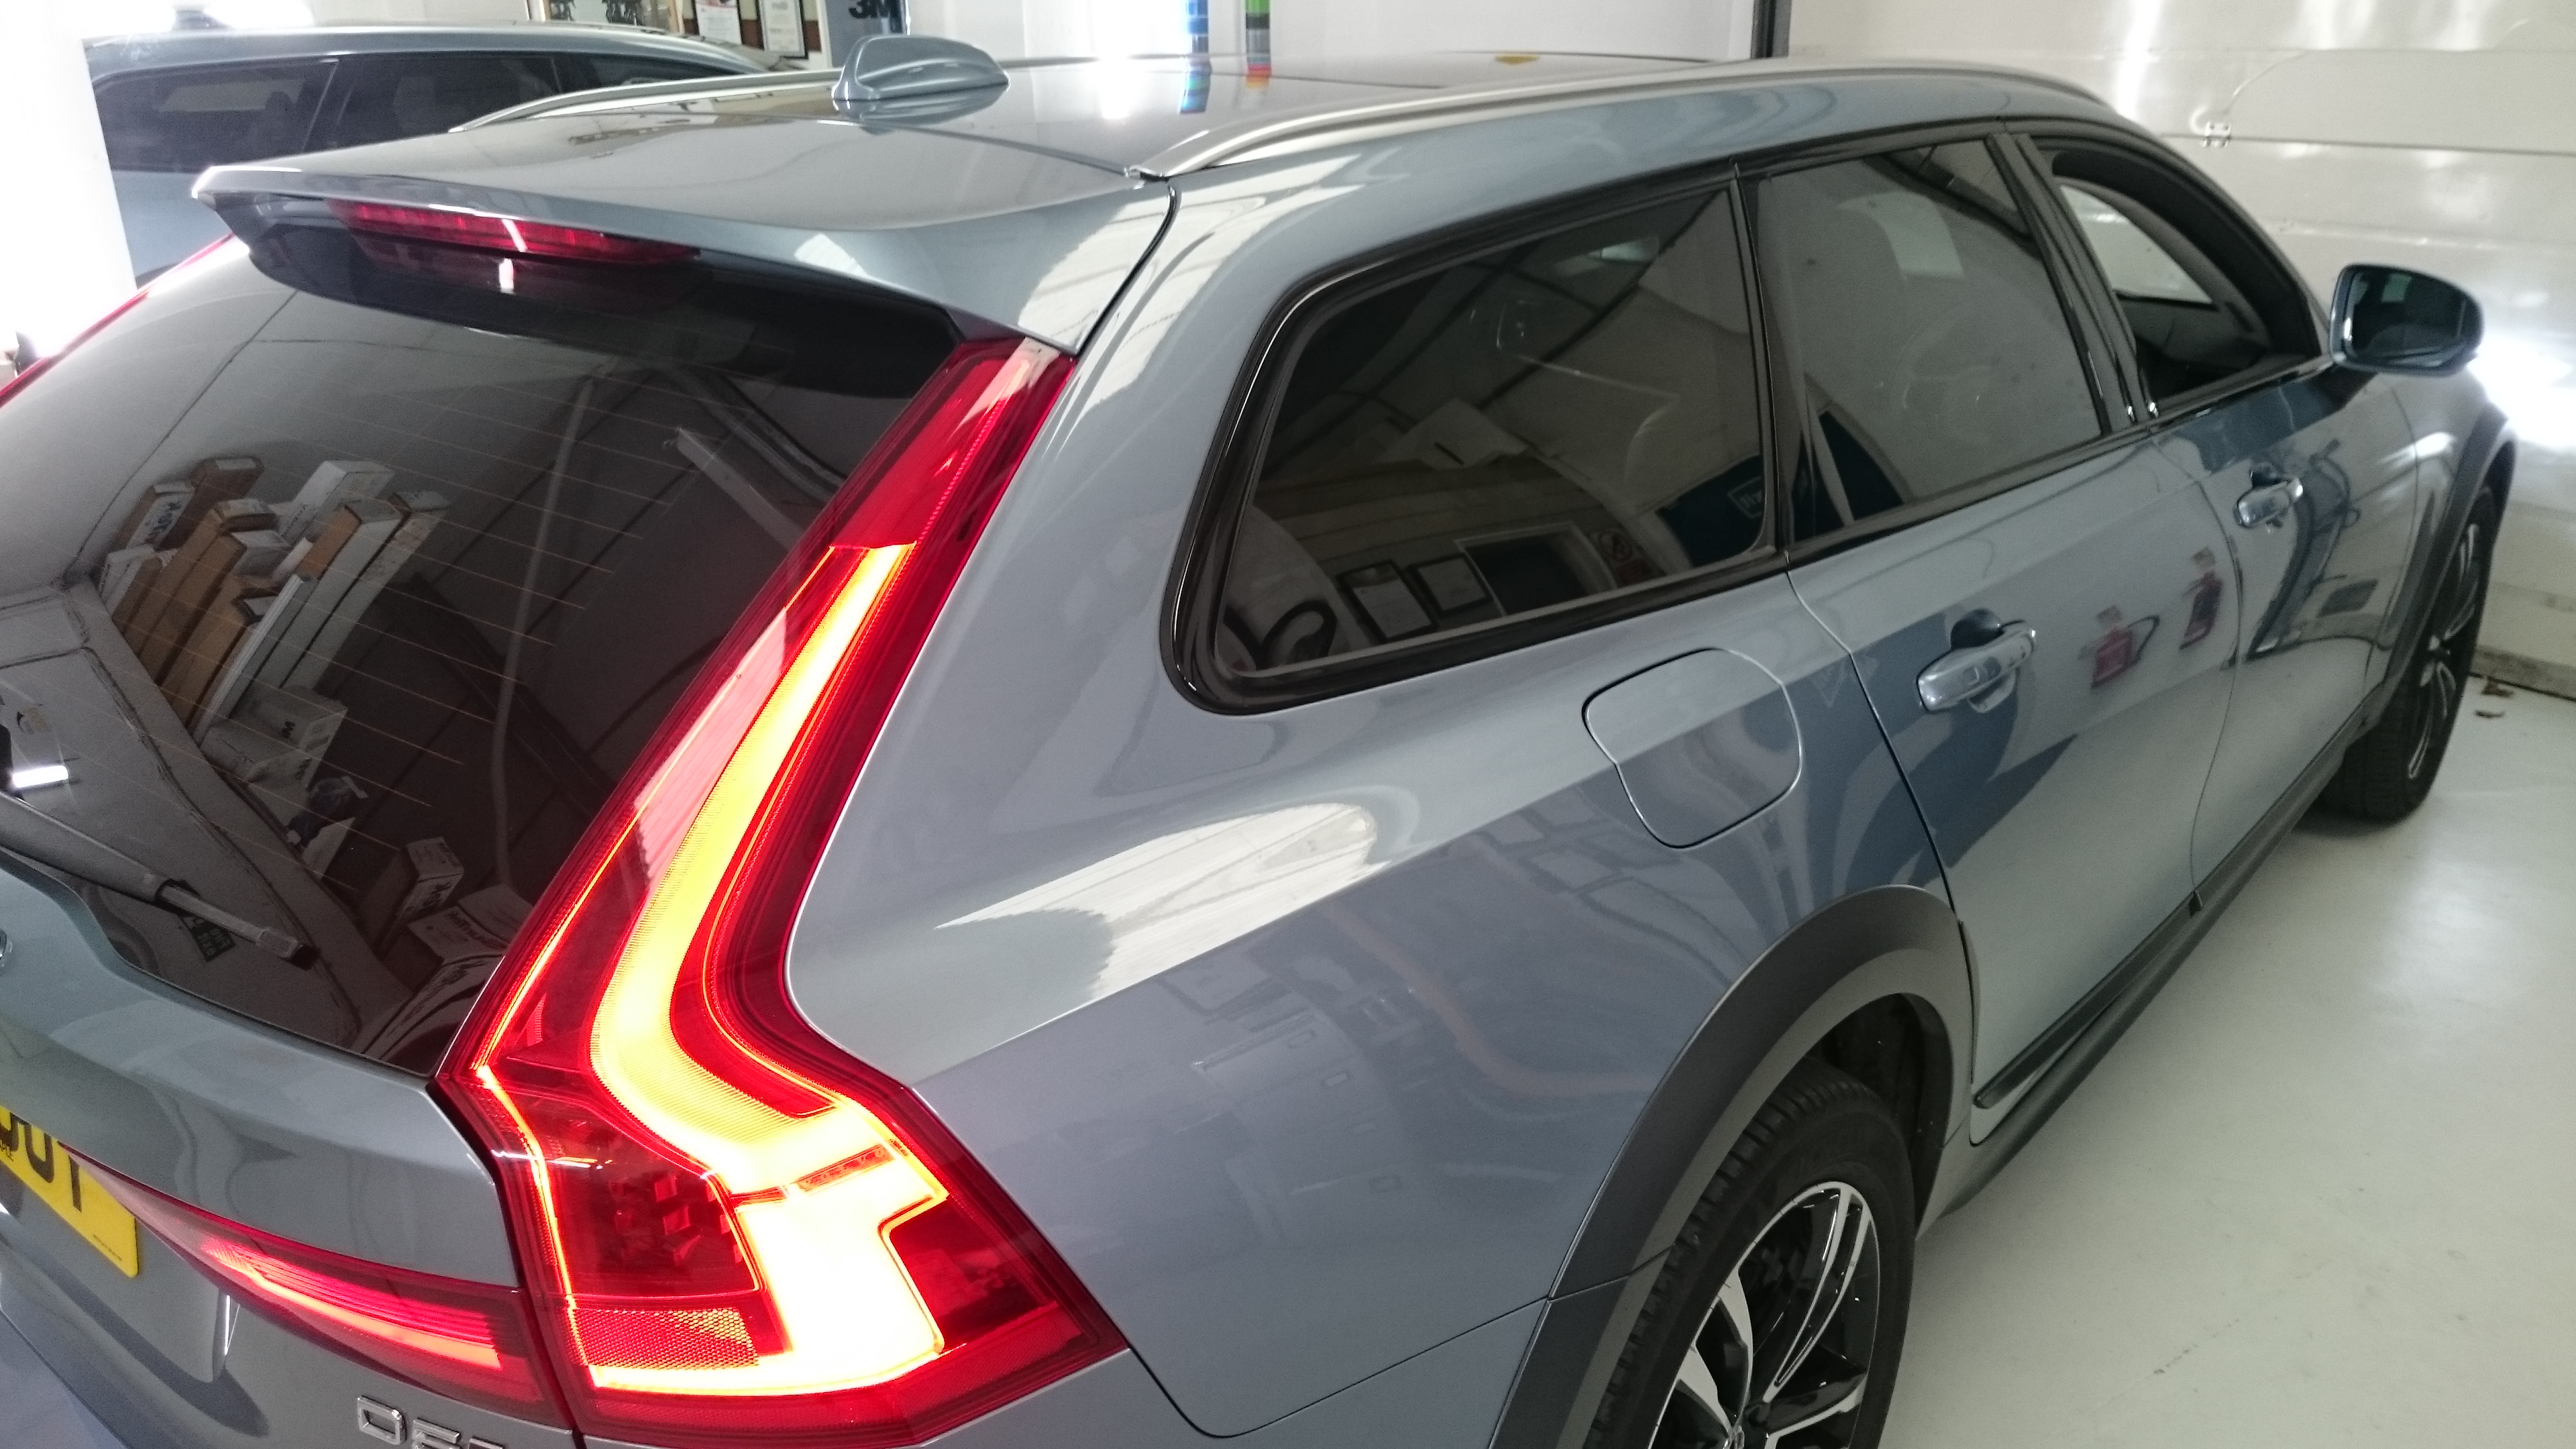 Volvo V90. Estate car window tinting in Barnstaple North Devon. Llumar ATC20 automotive window films. Tinting Express Barnstaple